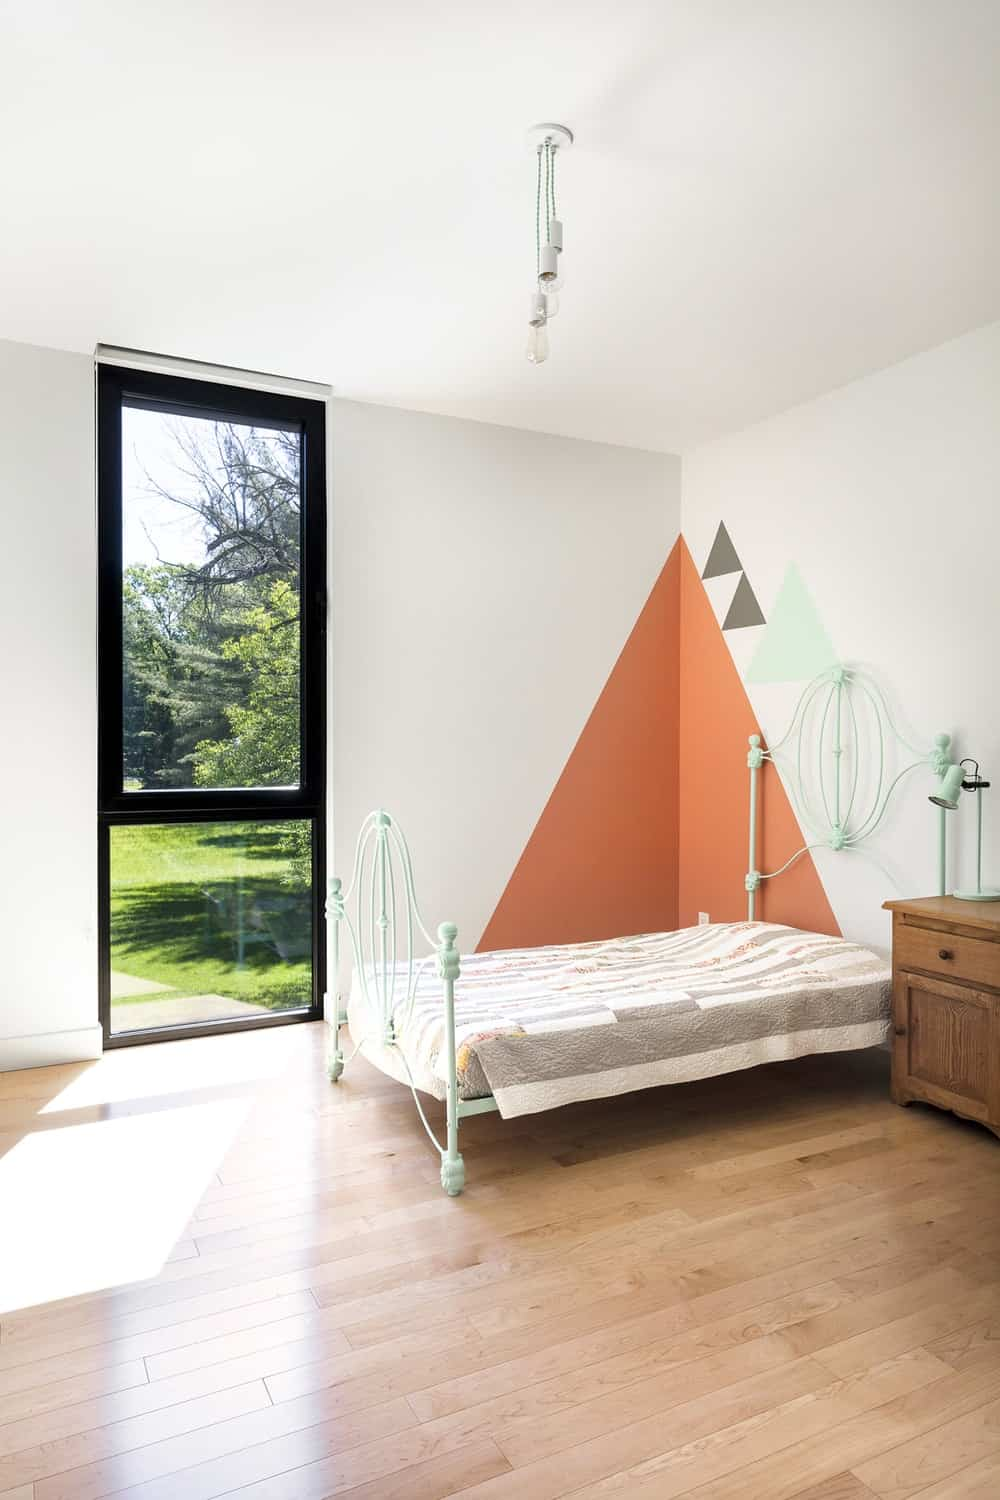 This is the simple kid's bedroom with a pastel-toned four-poster wrought-iron bed at the far corner by the tall window paired with a wooden bedside drawer bearing a table lamp of the same tone as the bed.